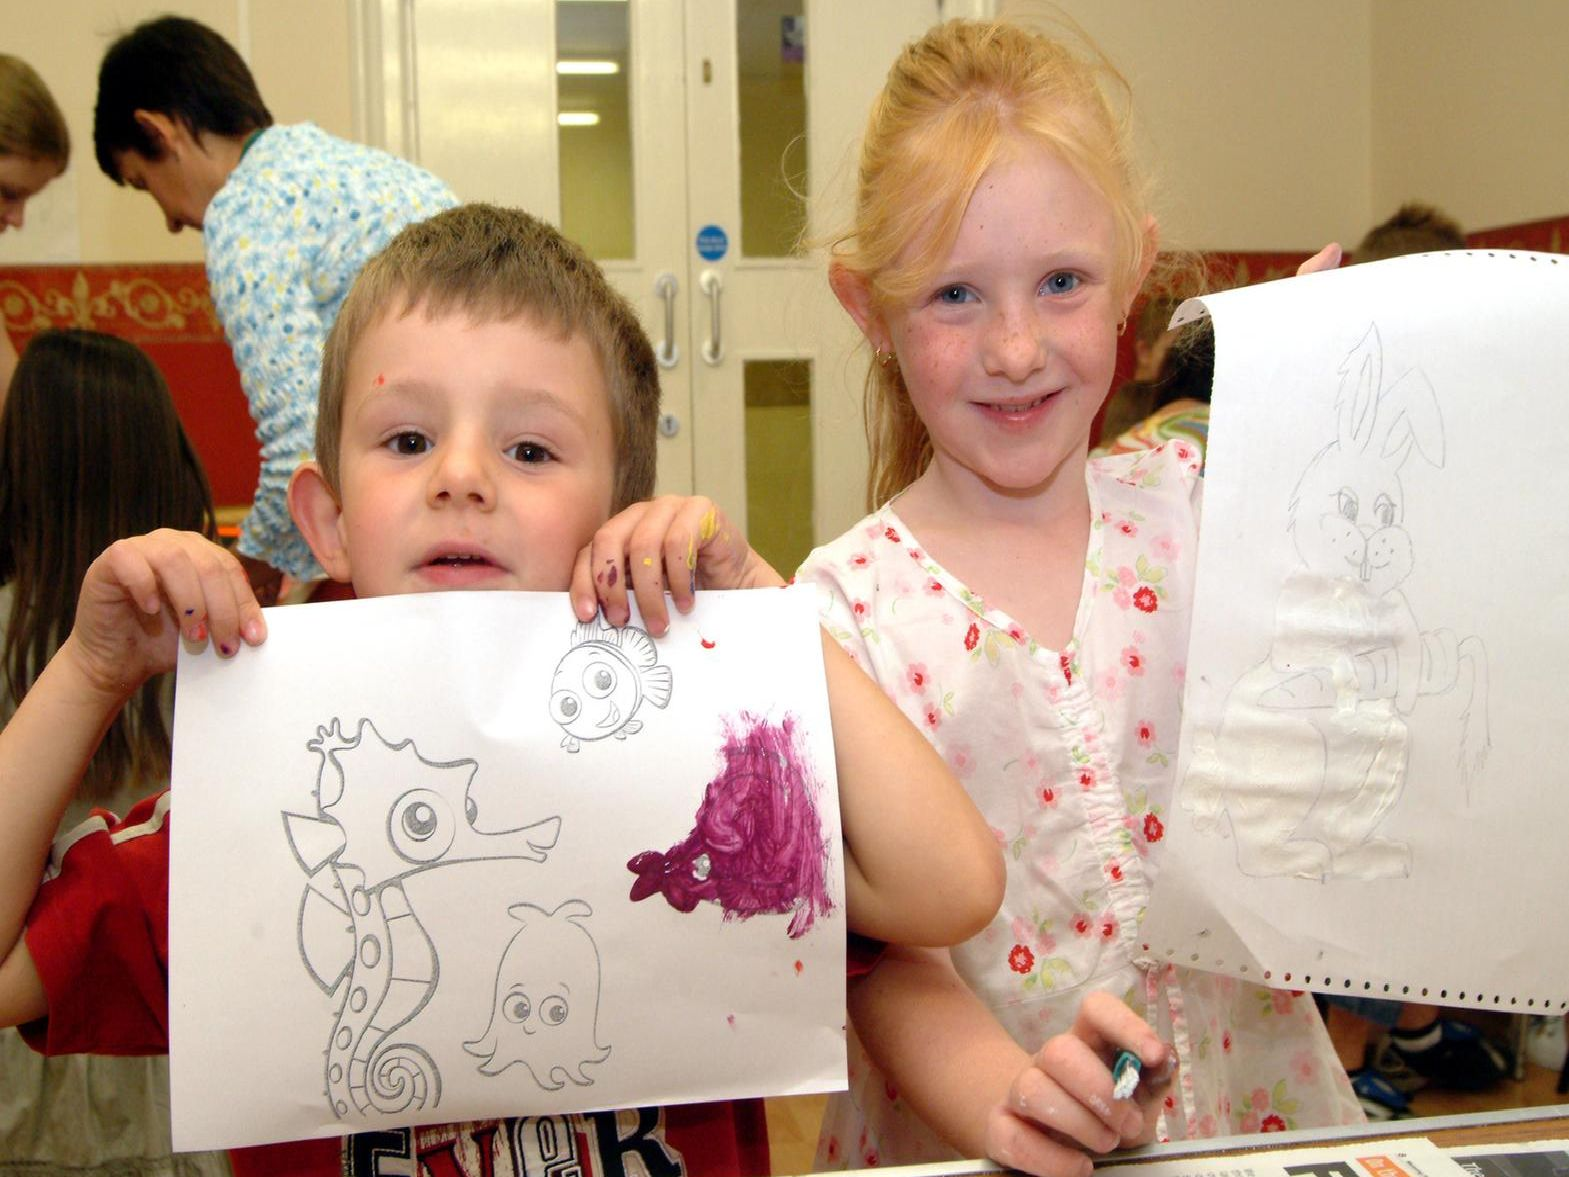 2007: Ben Moss and Lucy Capewell are having fun at a play session at the John Godber Centre in Hucknall.